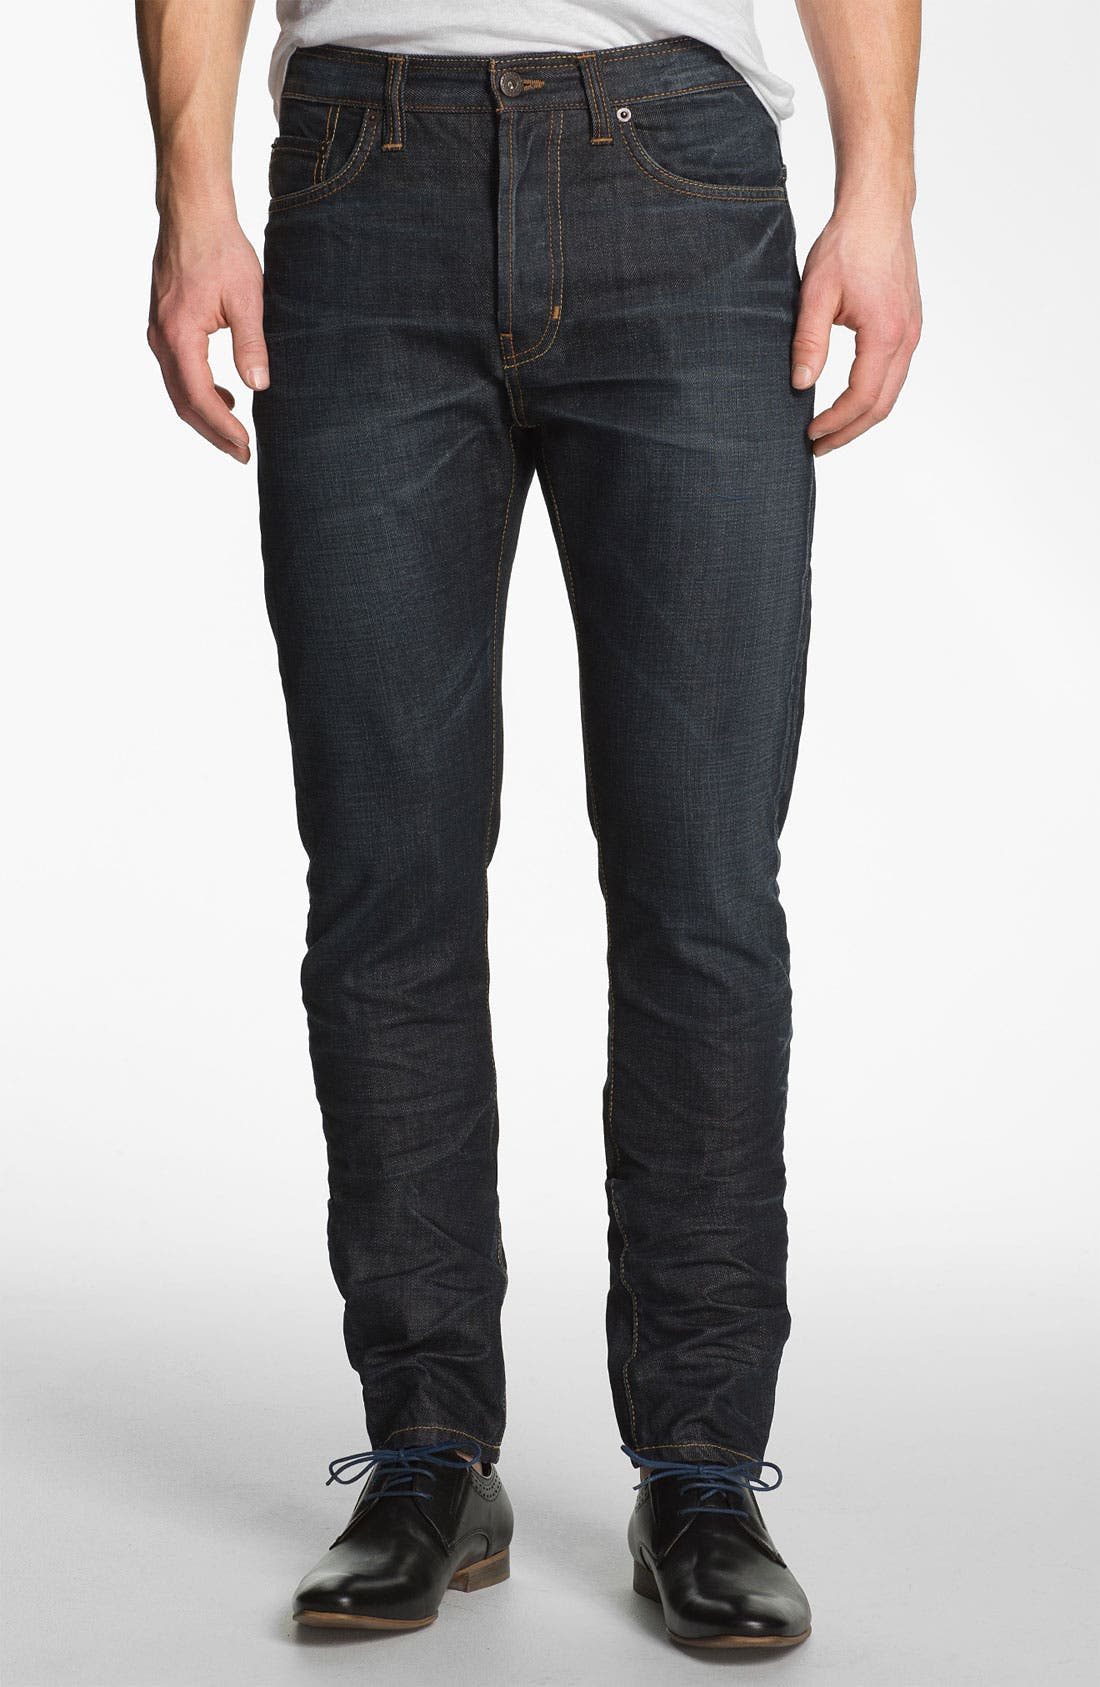 Alternate Image 2  - Natural Selection Denim 'Bruised' Slim Carrot Fit Jeans (Blue Rain)